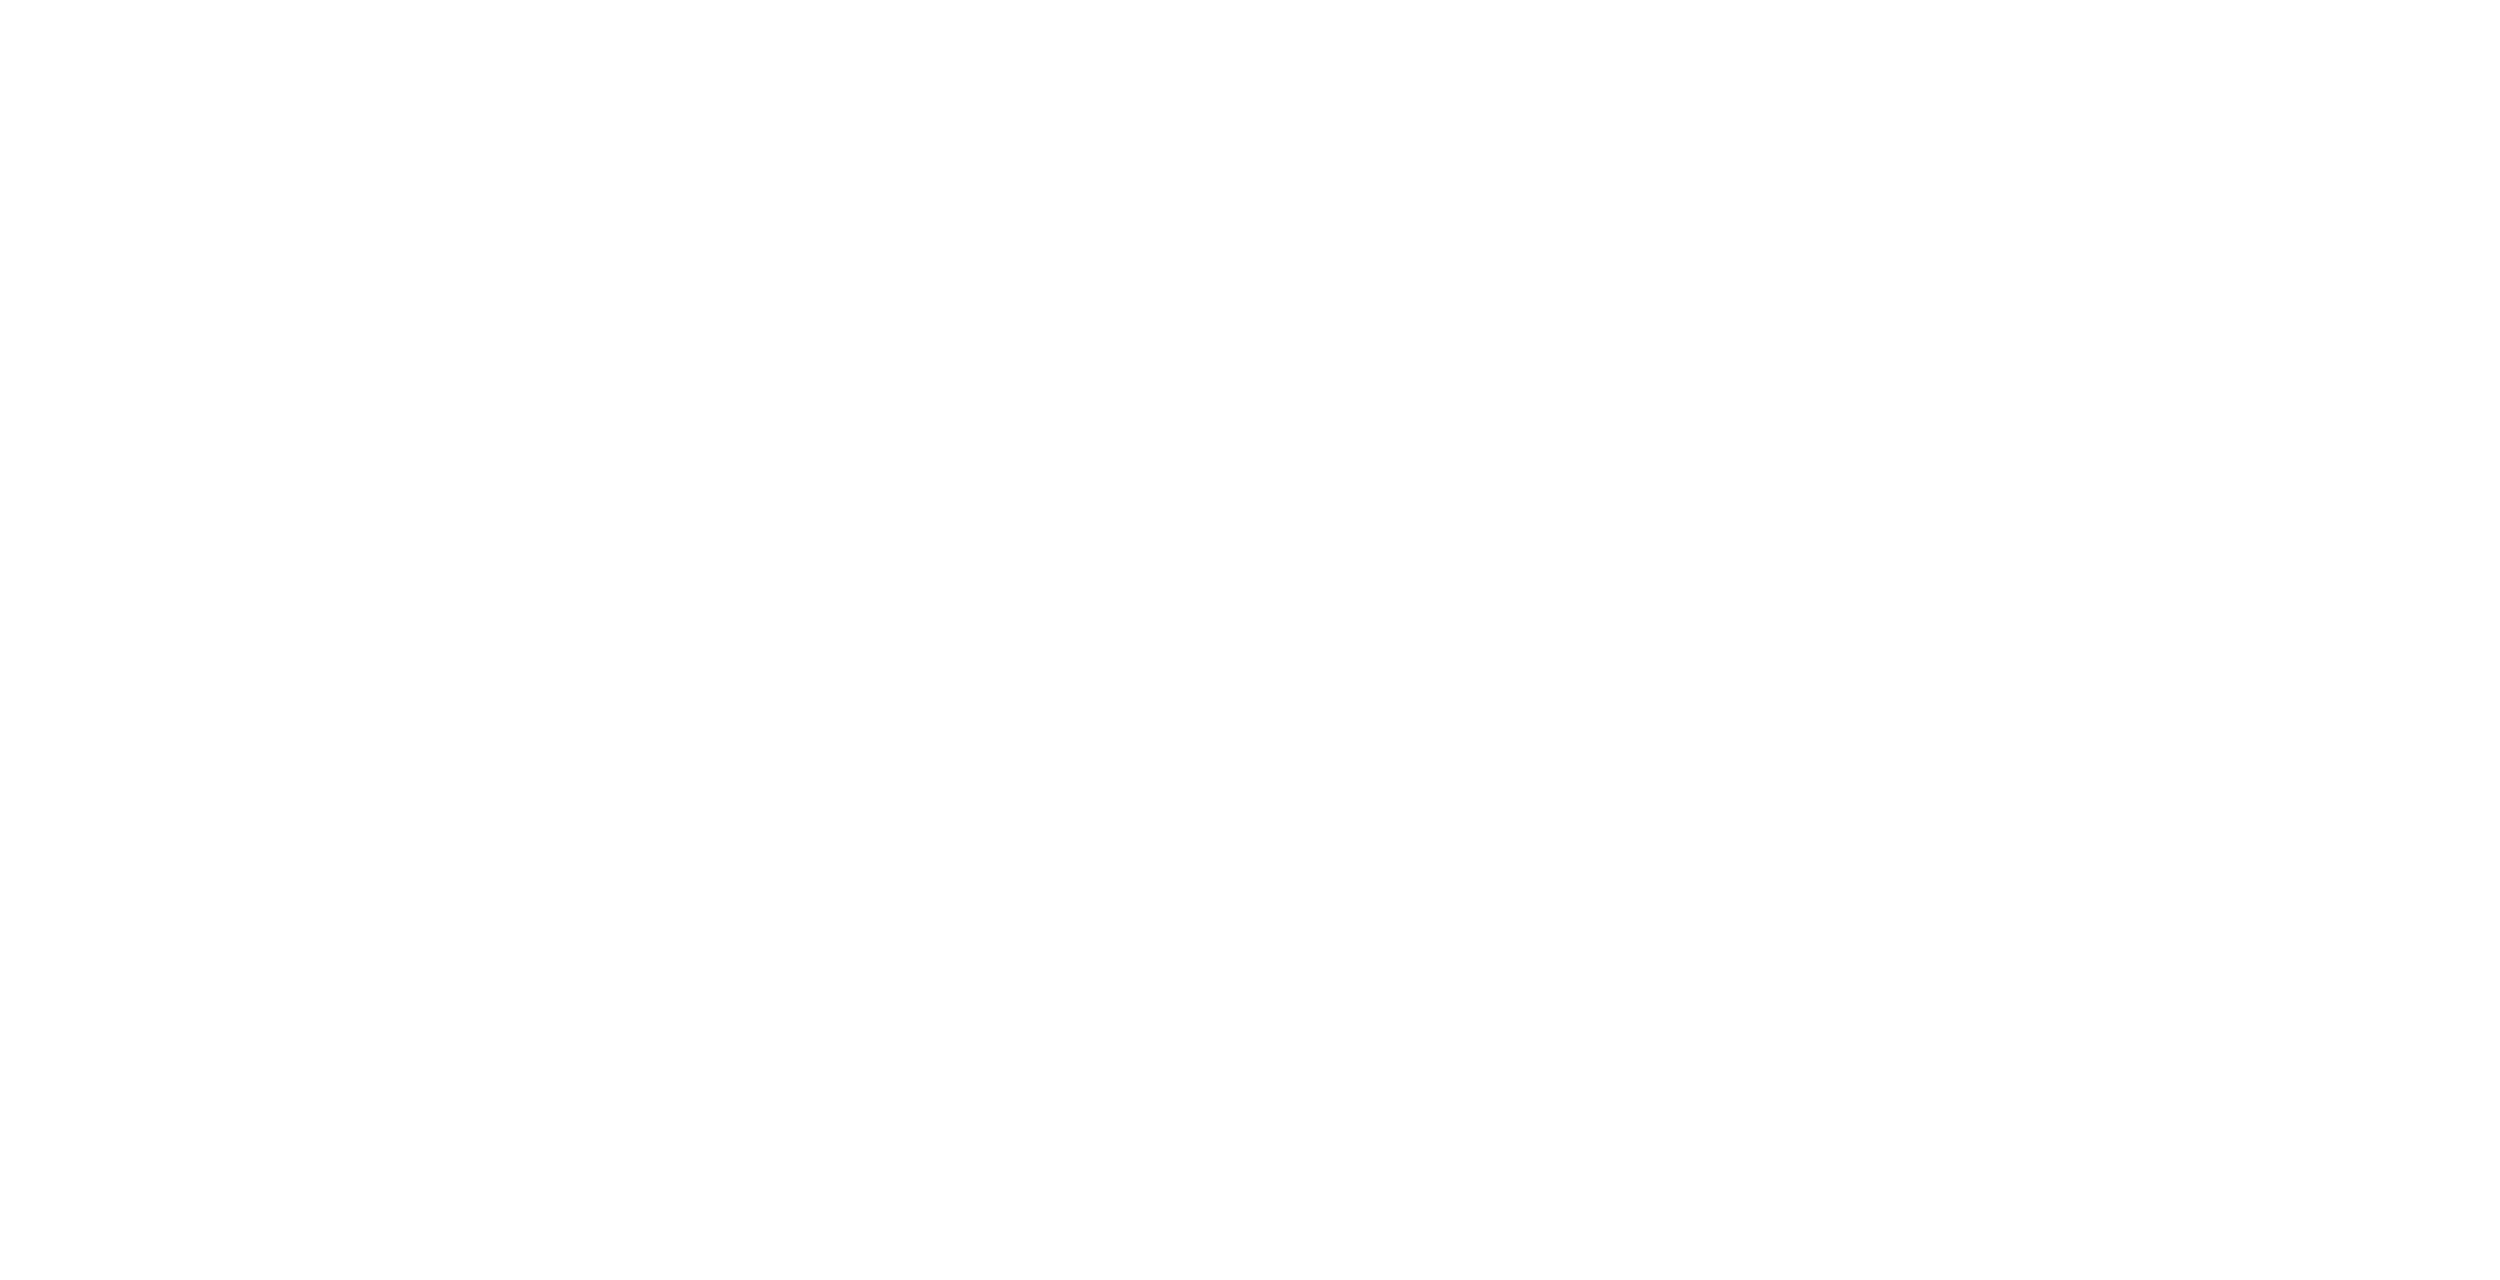 SPARTAN.FINANCIAL how it works diagram 1.png